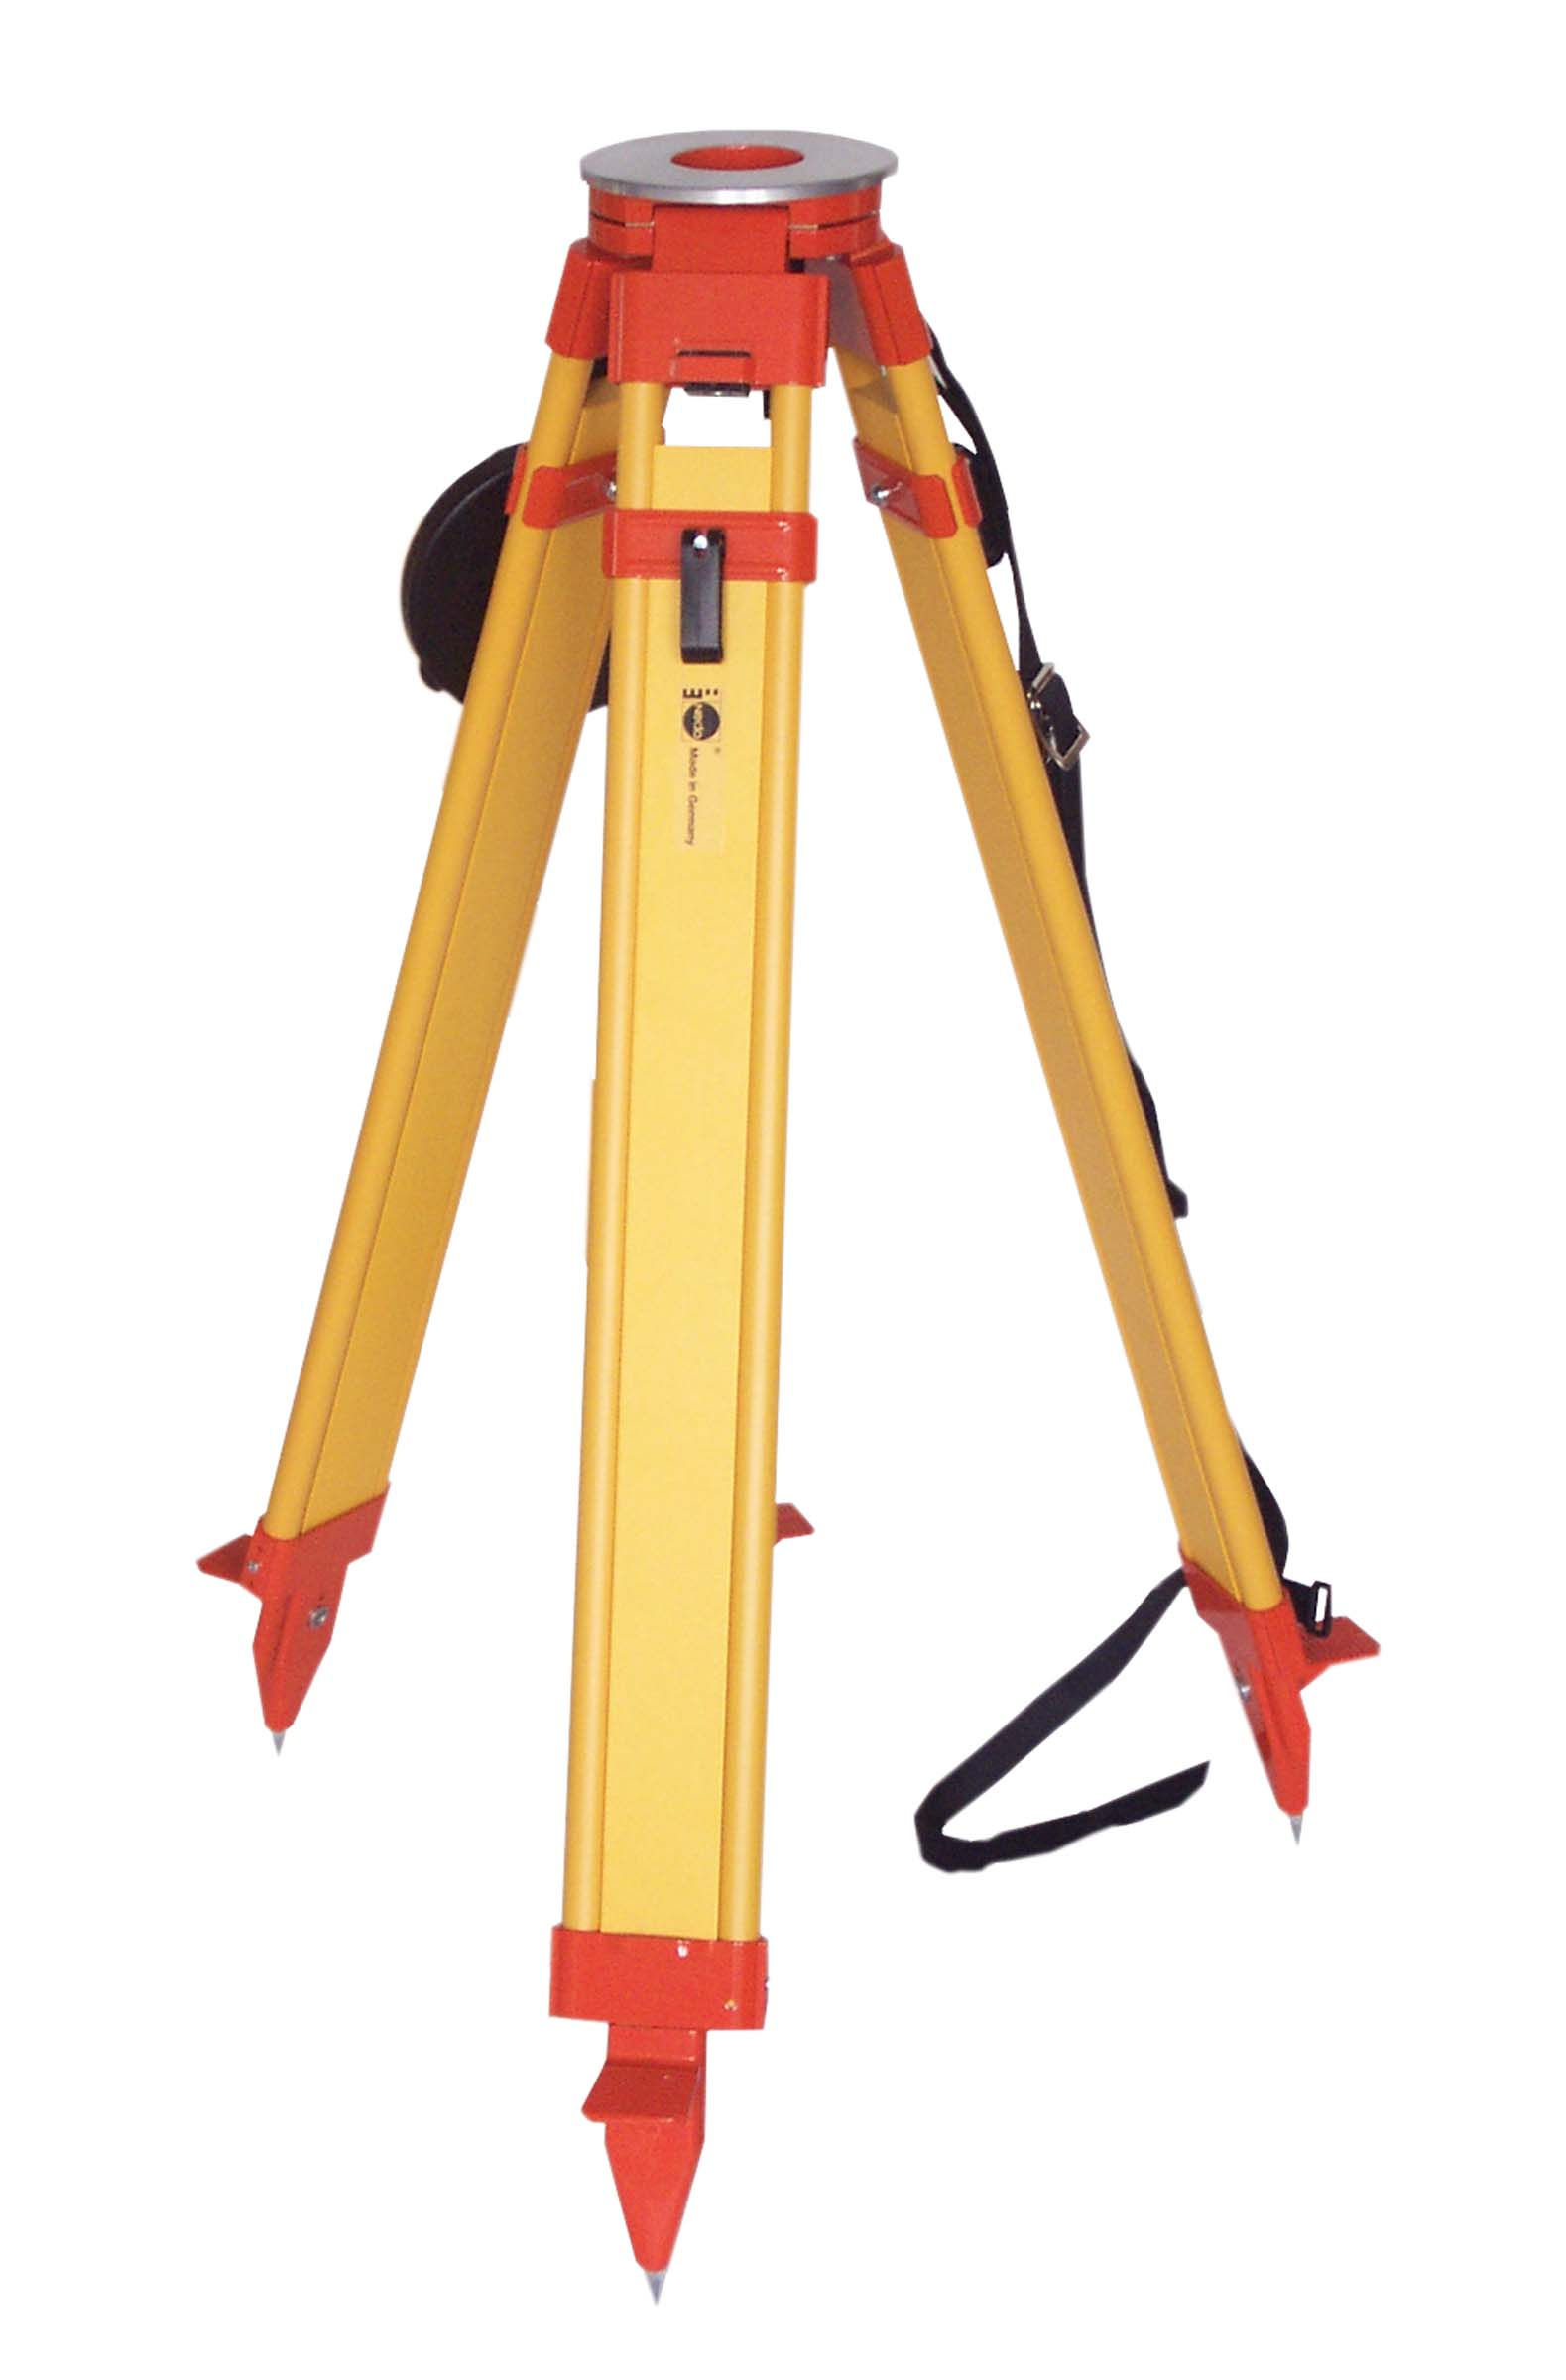 NEDO Surveyors Grade Wooden Tripod with Quick Clamp